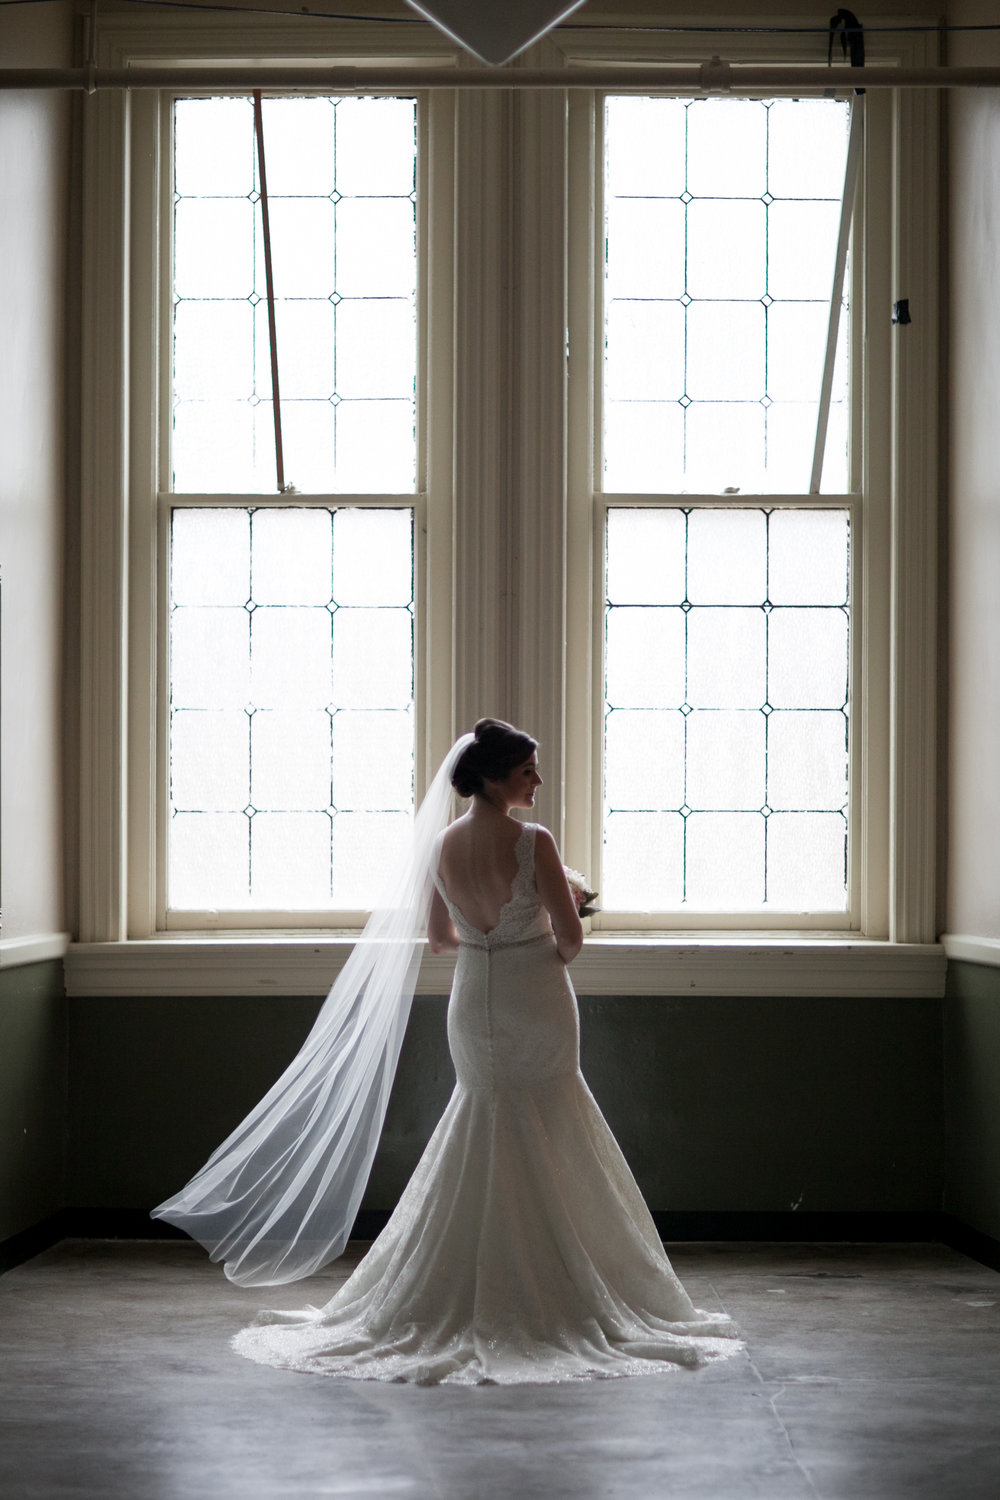 LisaDiederichPhotography_caitlin&caseywedding_blog-26.jpg